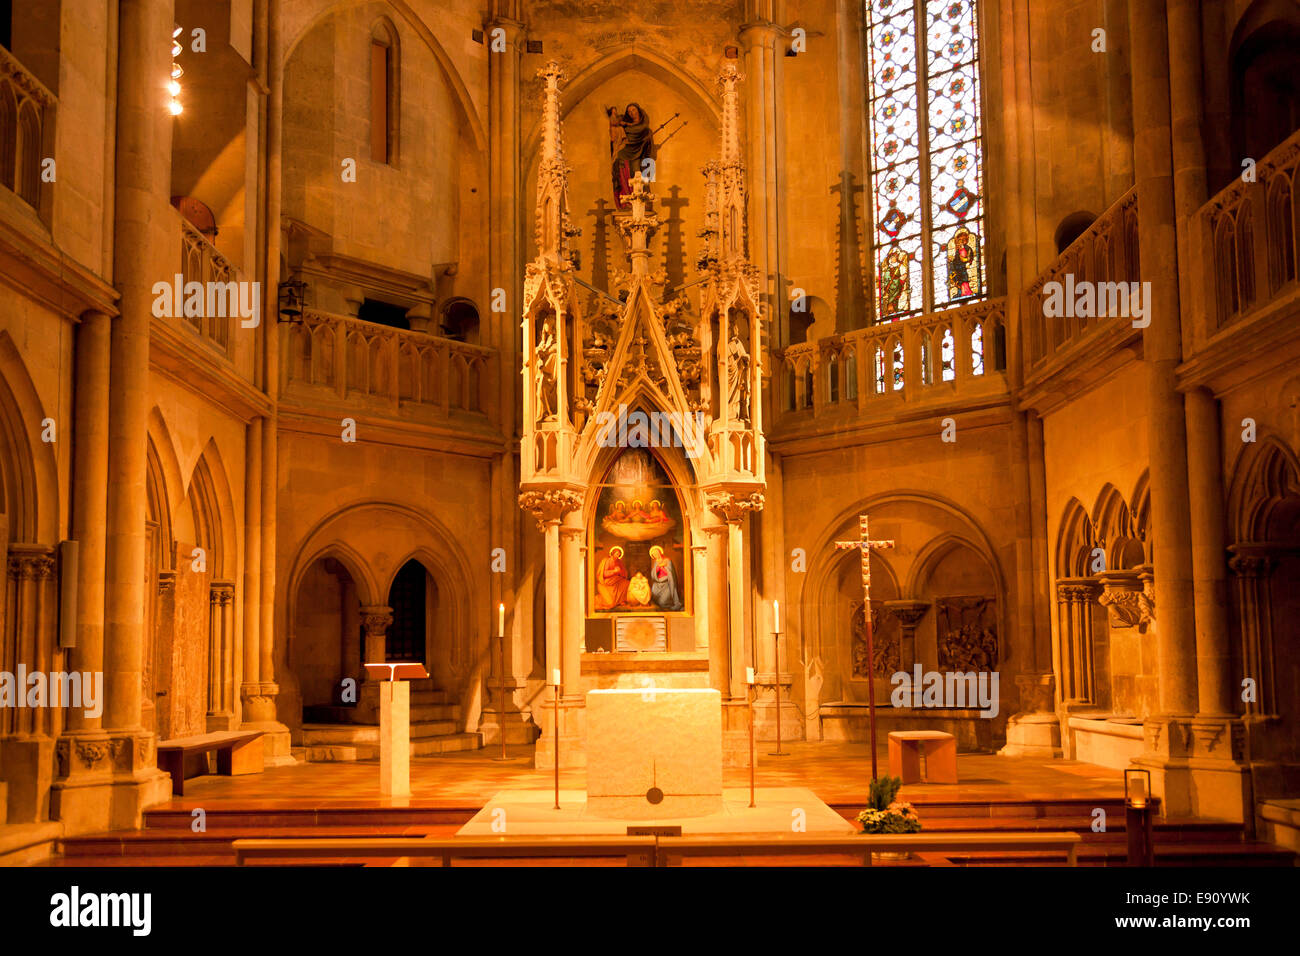 interior and altar of the regensburg cathedral in regensburg stock photo royalty free image. Black Bedroom Furniture Sets. Home Design Ideas